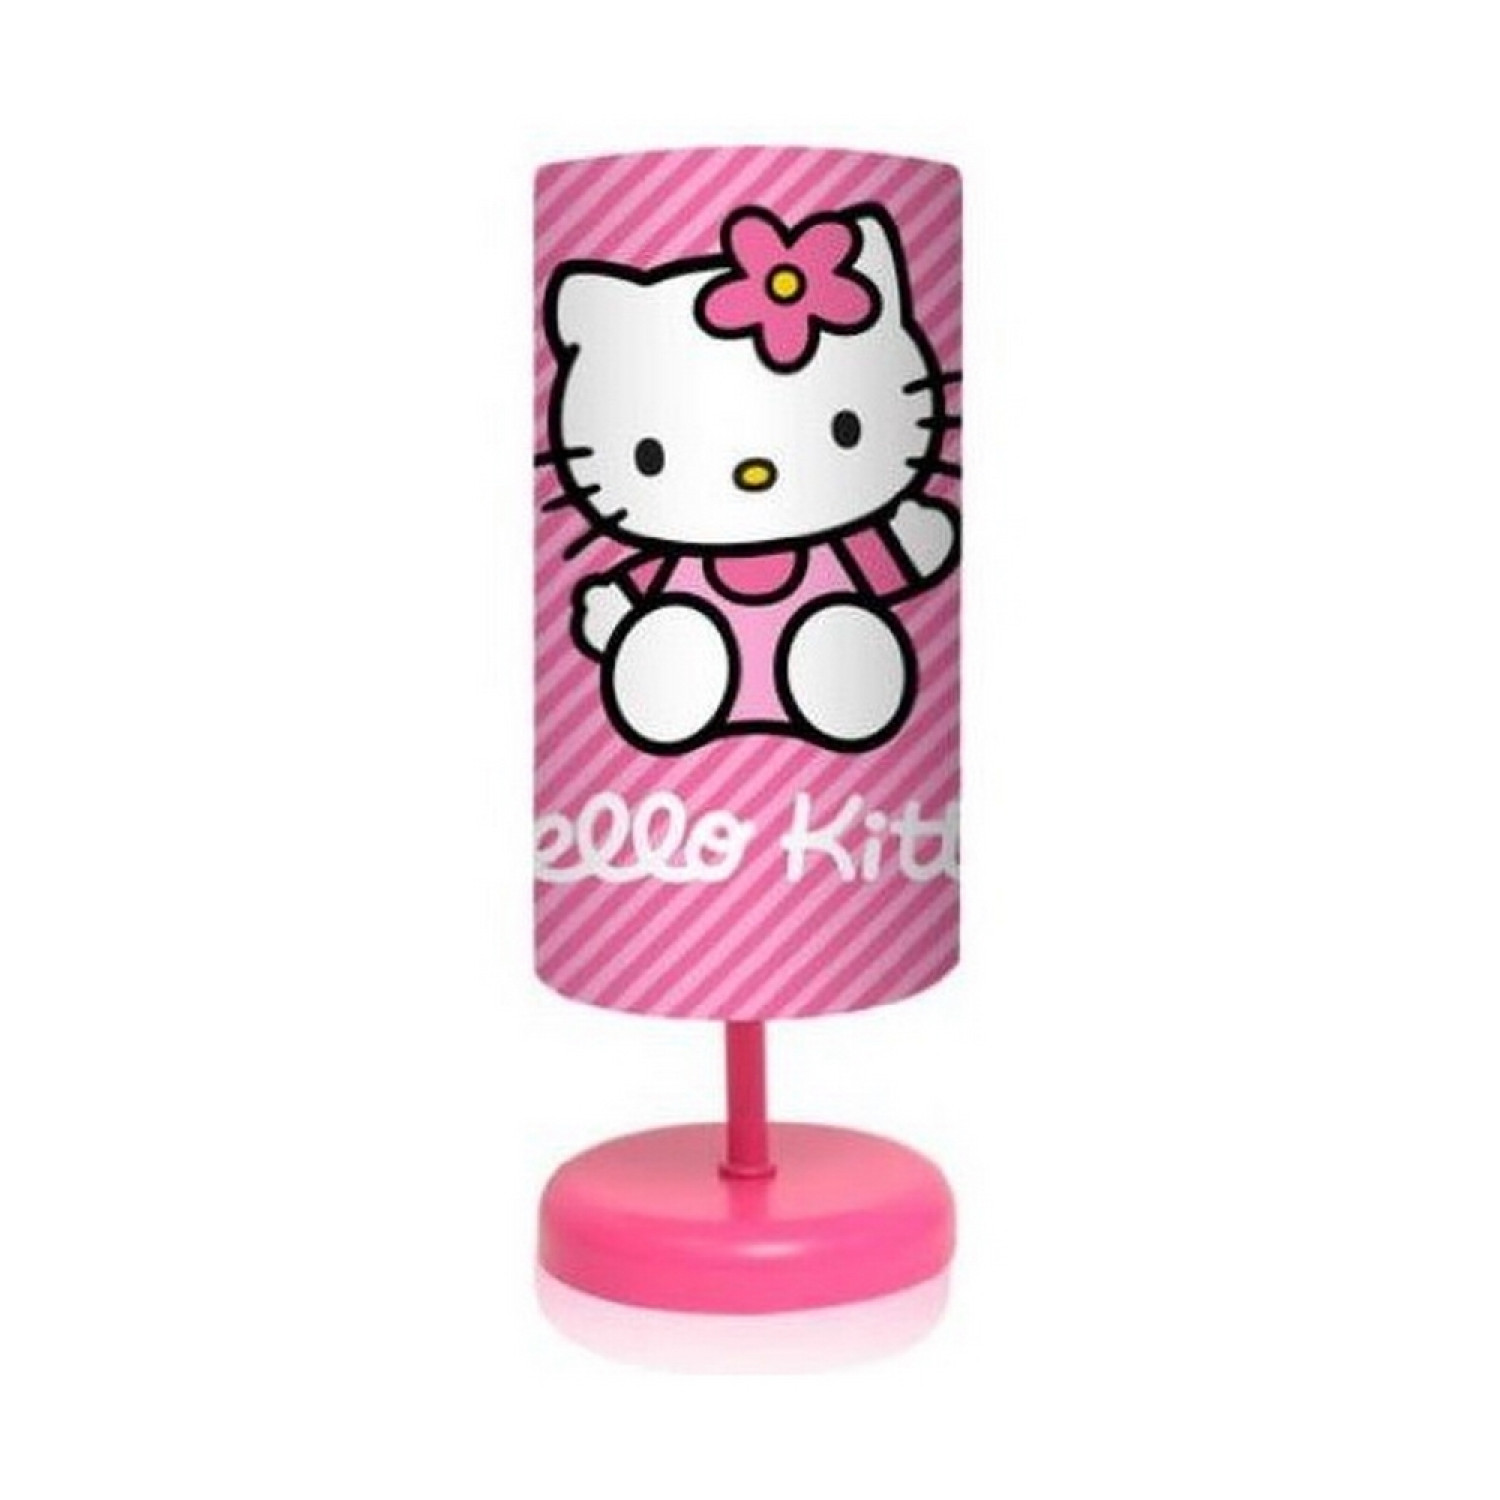 Lampe de chevet - Sanrio - Hello Kitty cylindrique - 230V